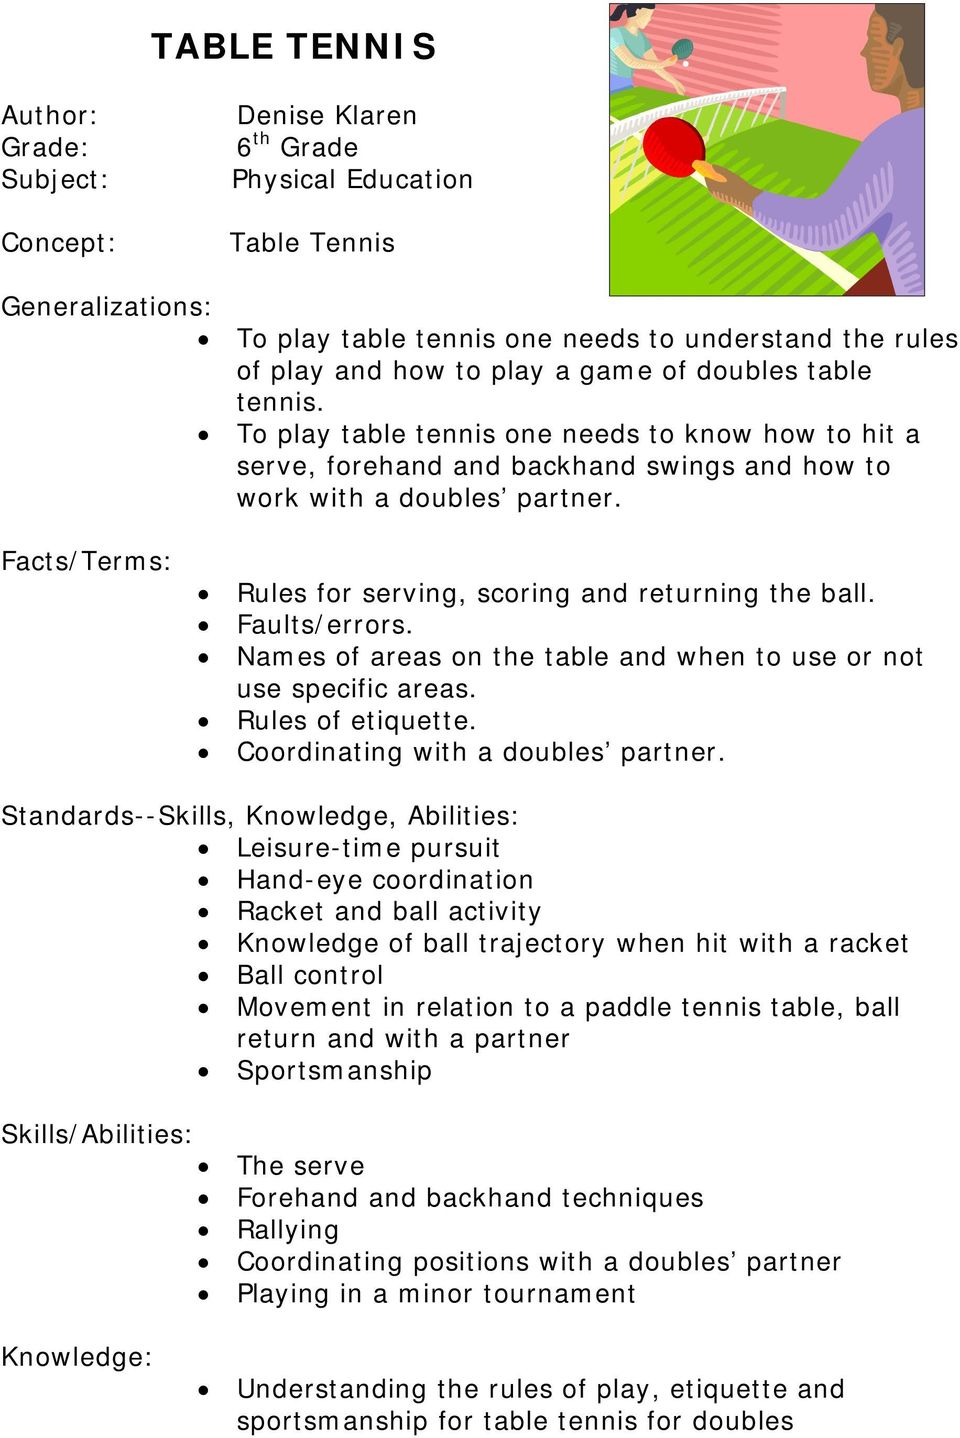 Facts/Terms: Rules for serving, scoring and returning the ball. Faults/errors. Names of areas on the table and when to use or not use specific areas. Rules of etiquette.